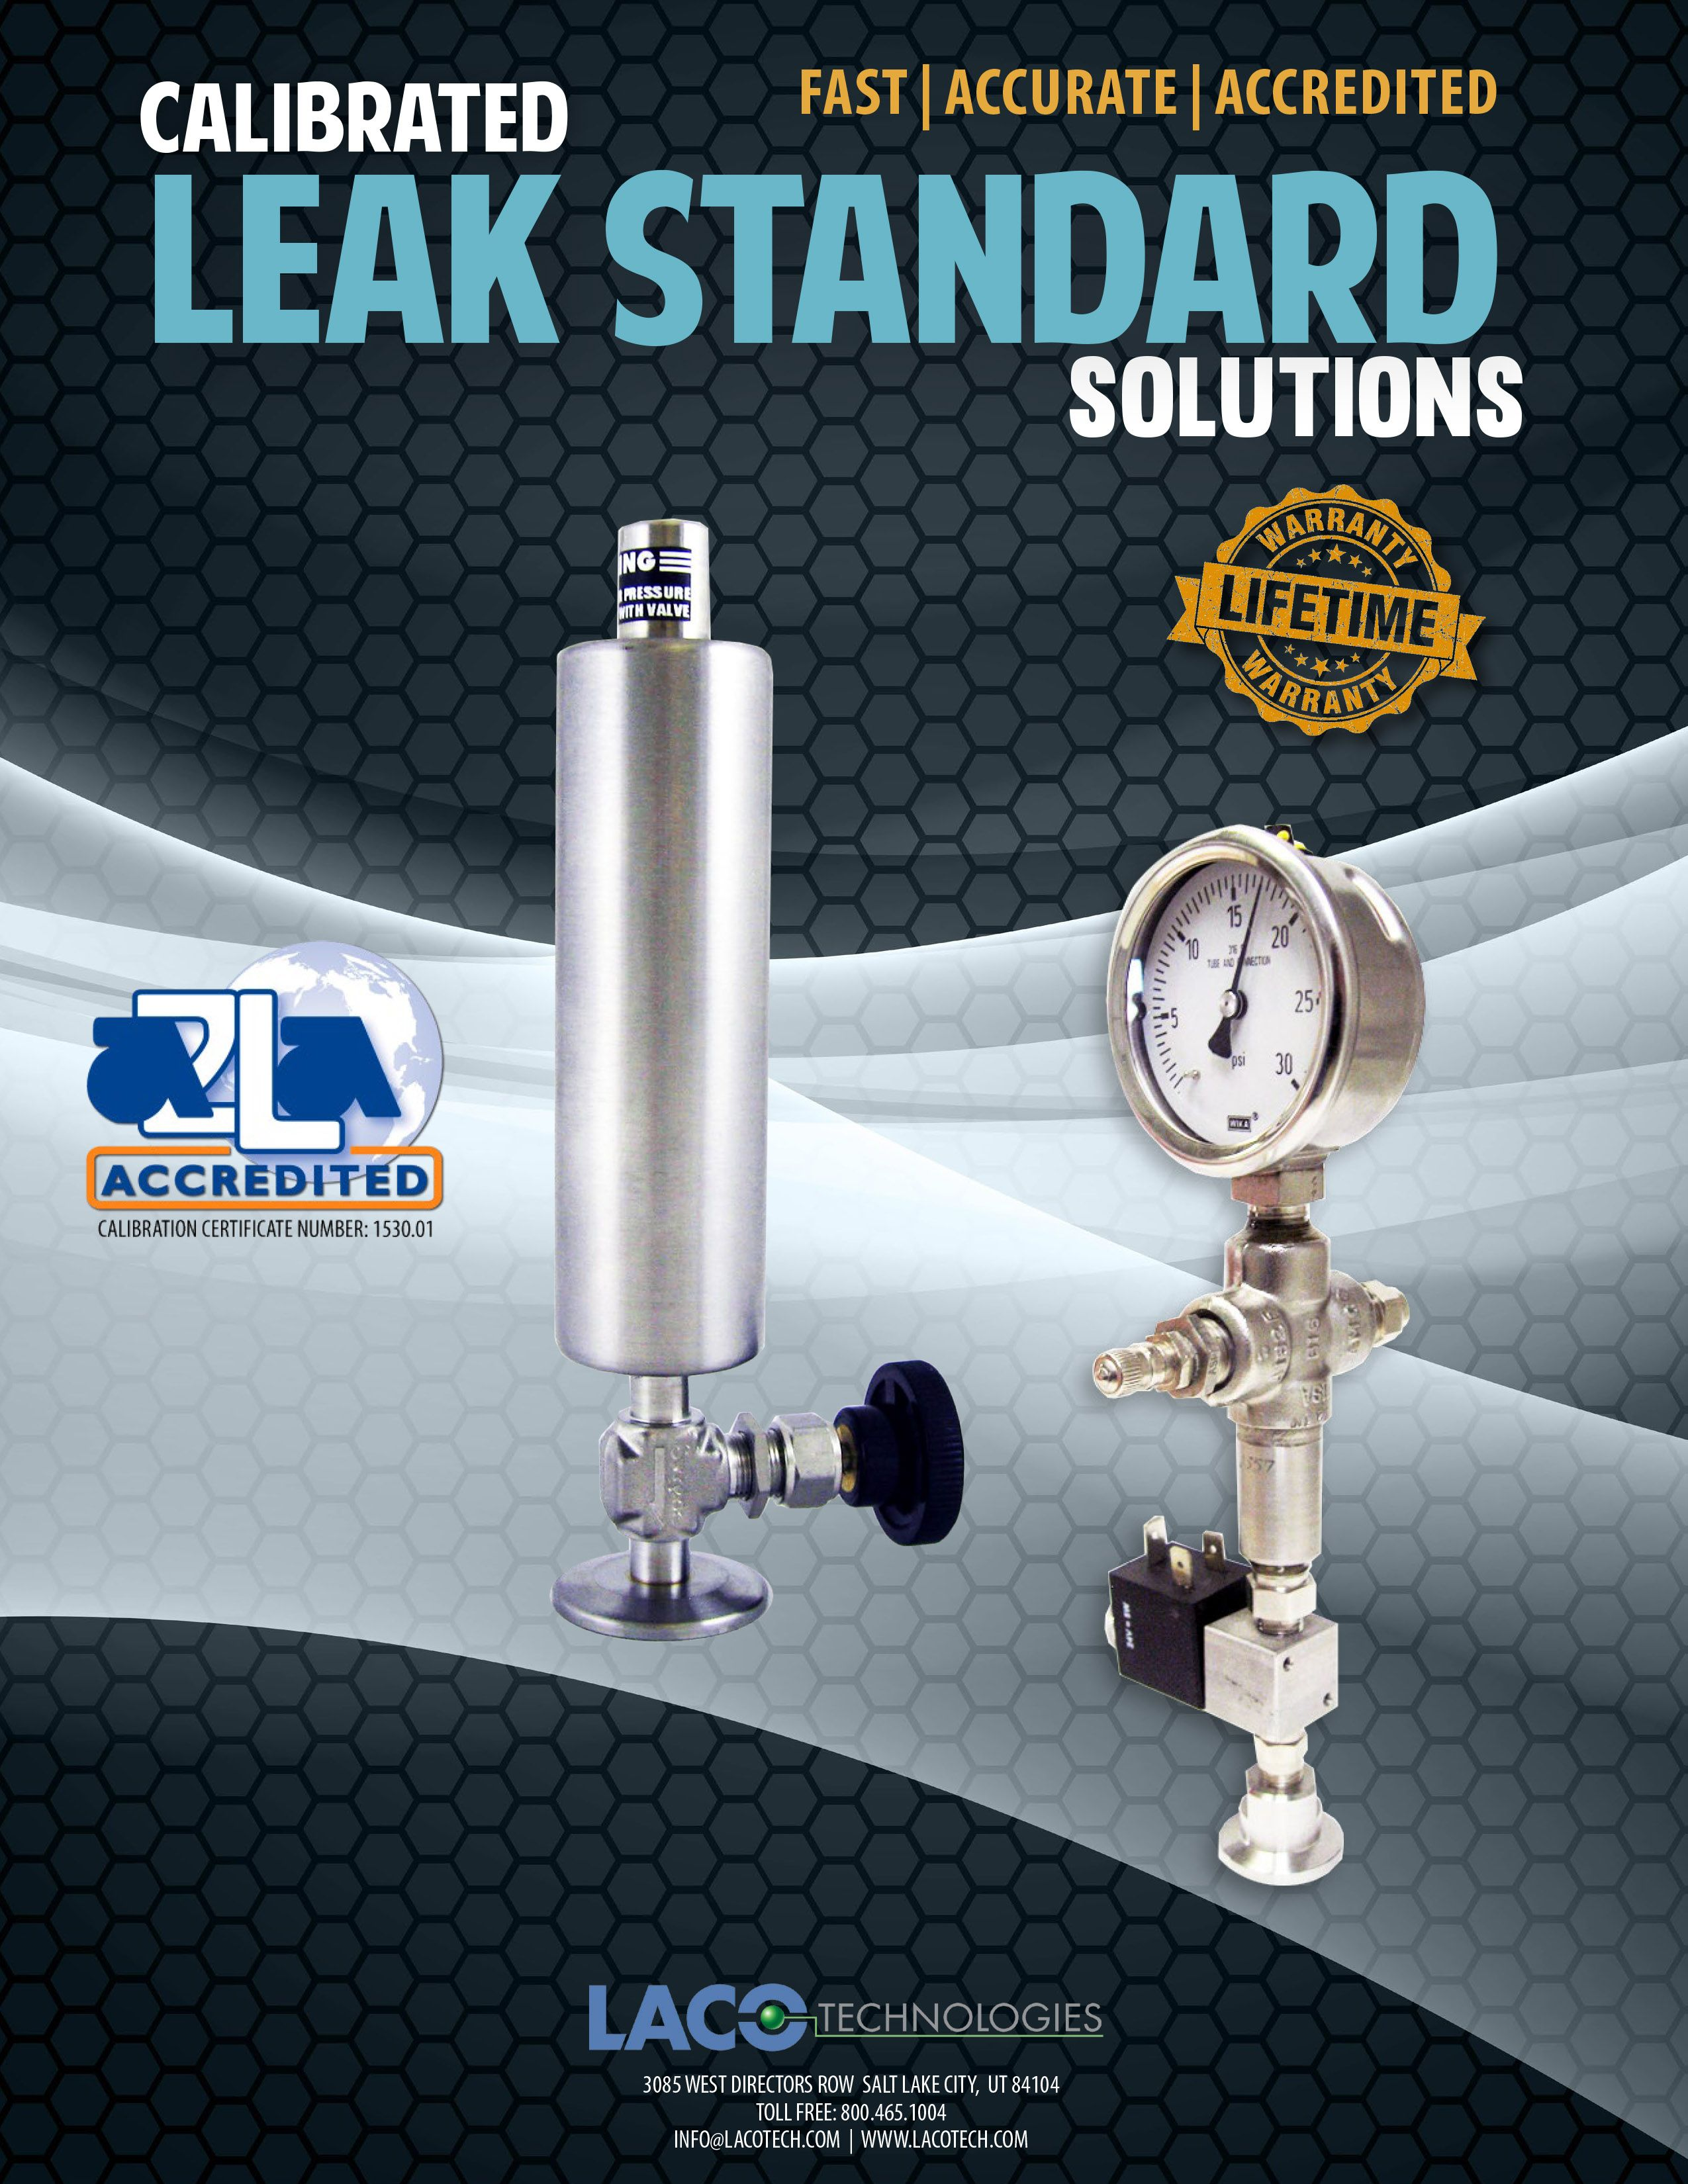 Laco technologies is the world leader in calibrated leak